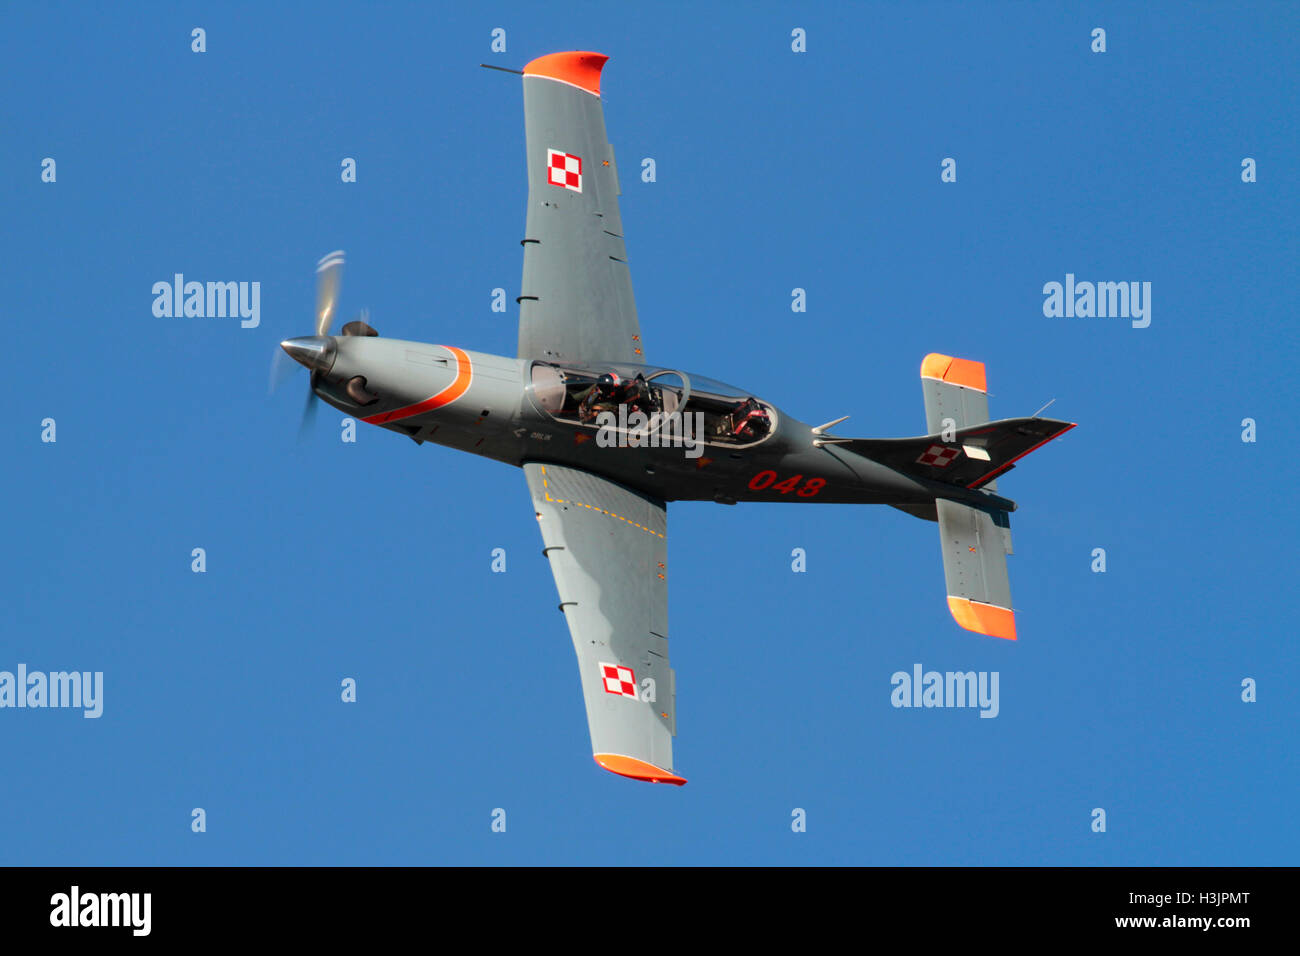 Military aviation. Polish Air Force PZL-130 Orlik turboprop trainer plane flying at an air display - Stock Image